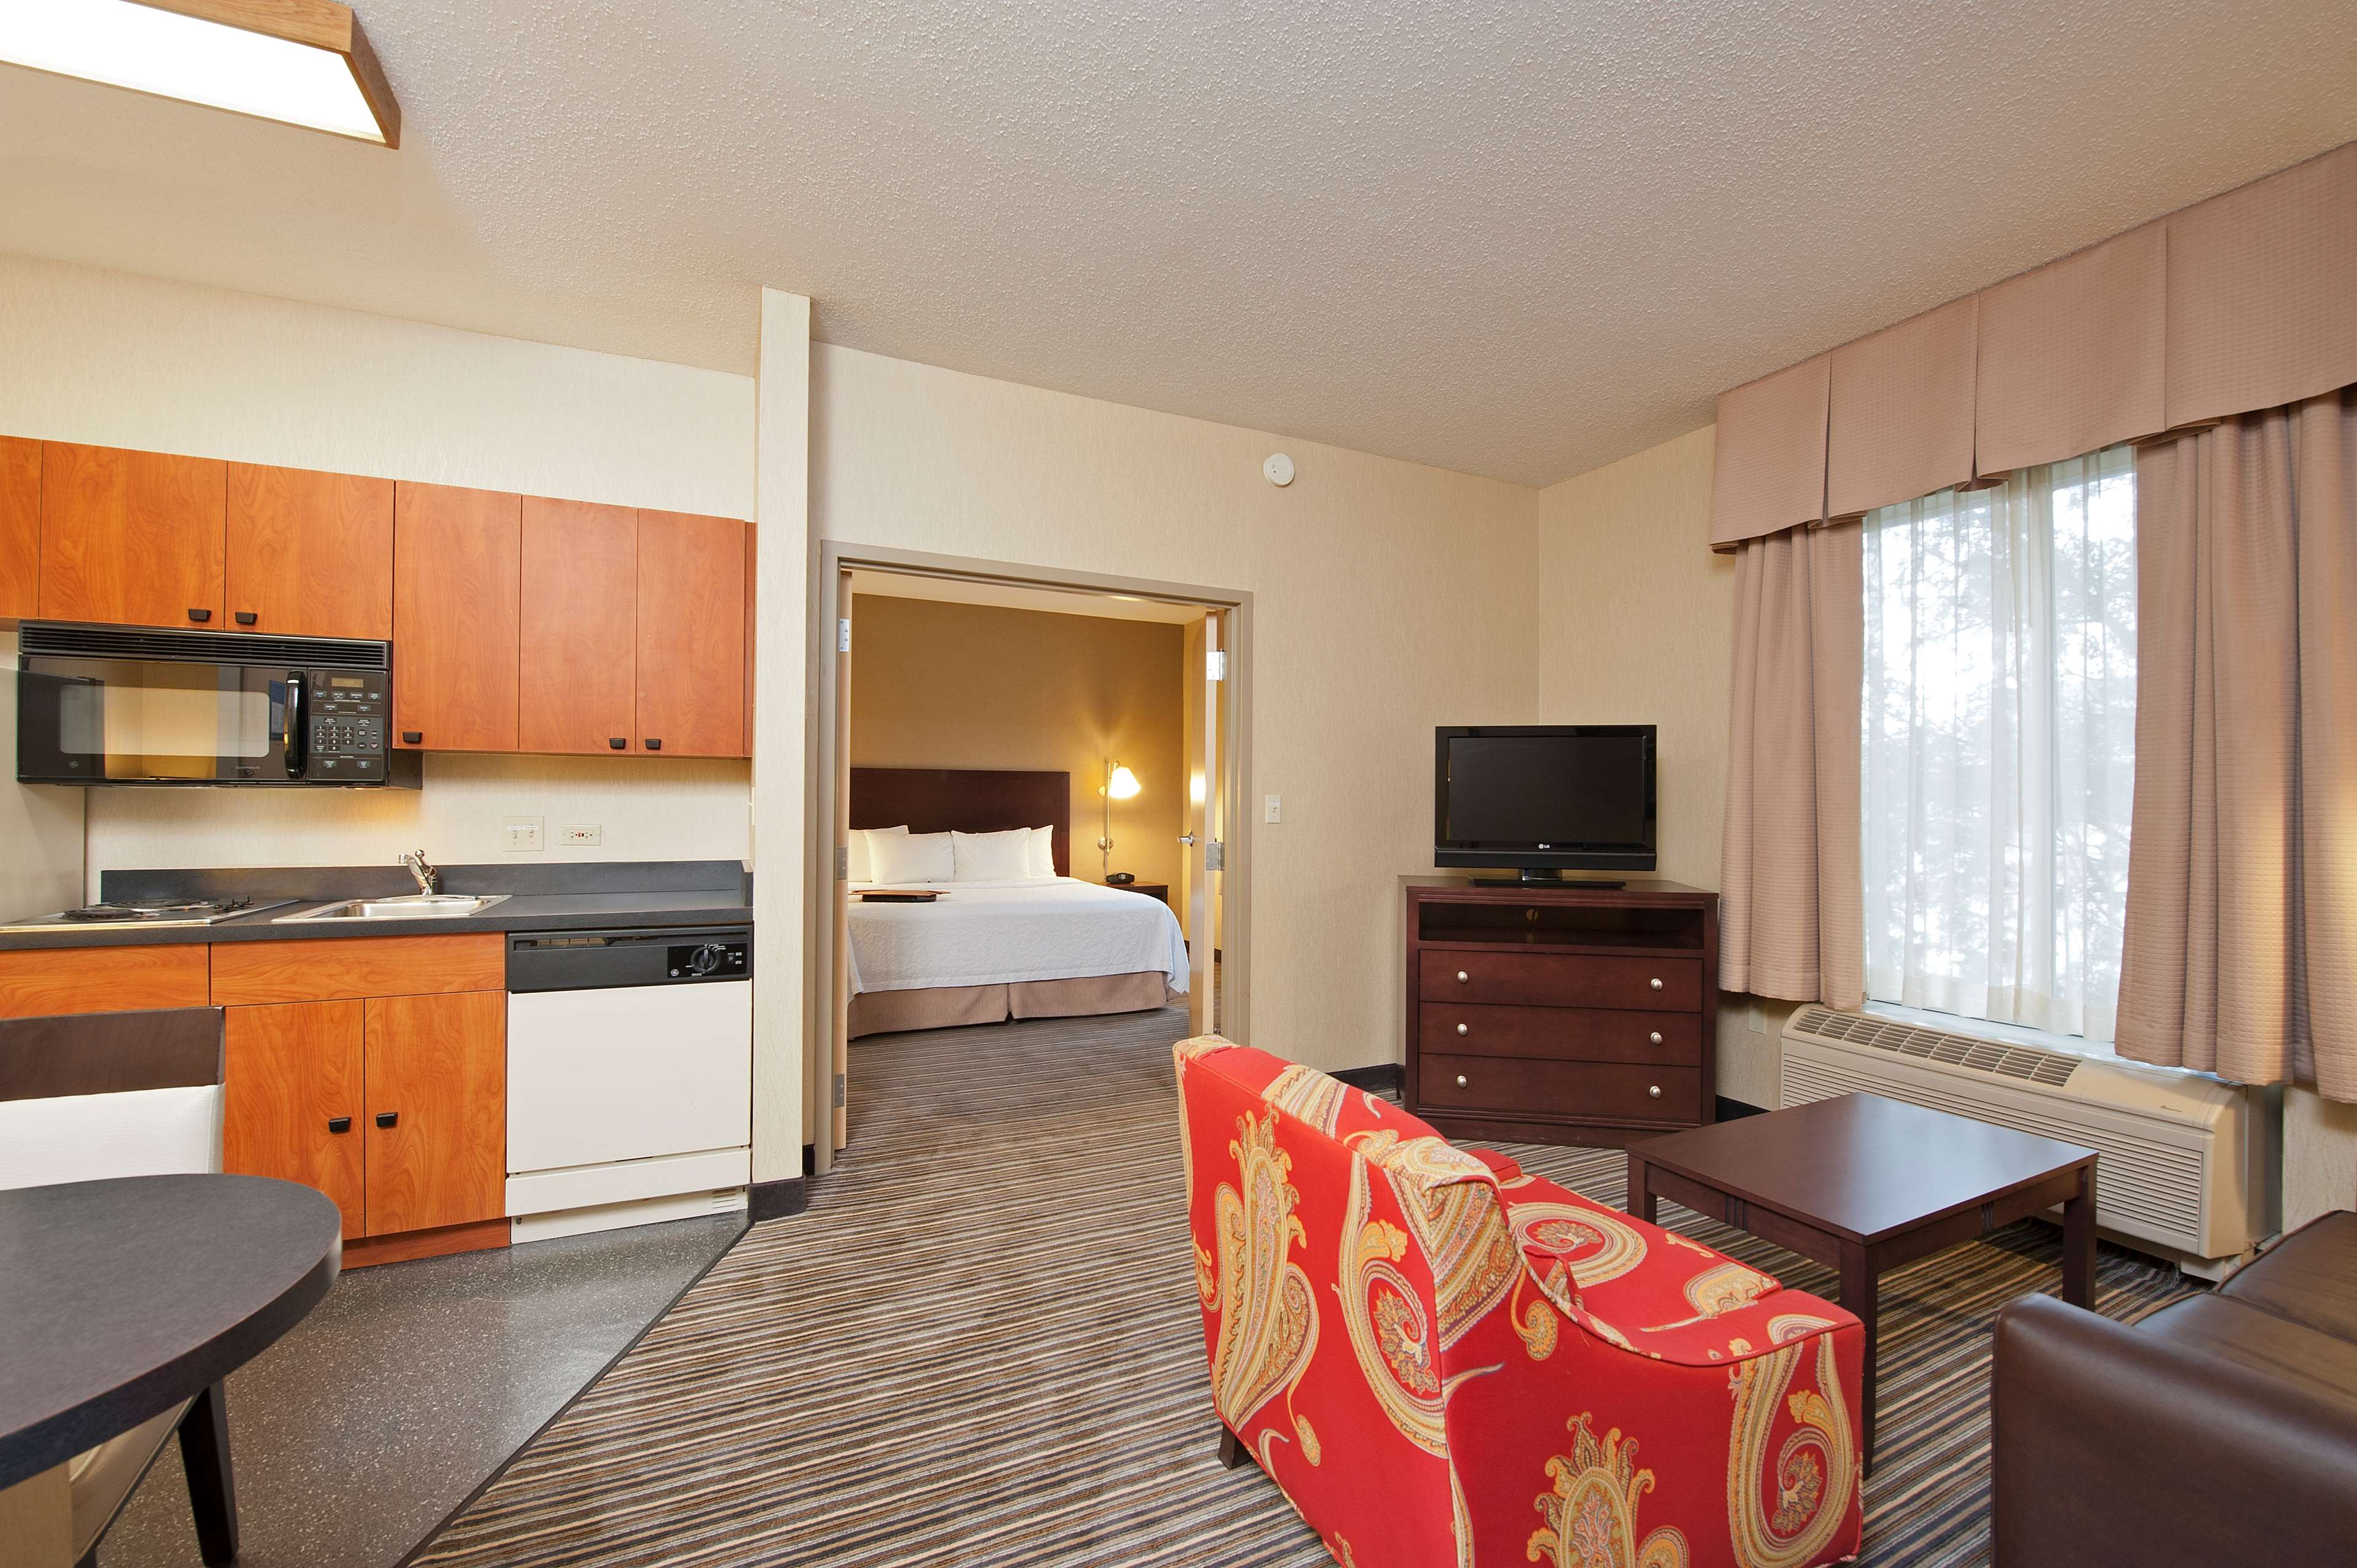 Hampton Inn & Suites Chicago/Lincolnshire image 14